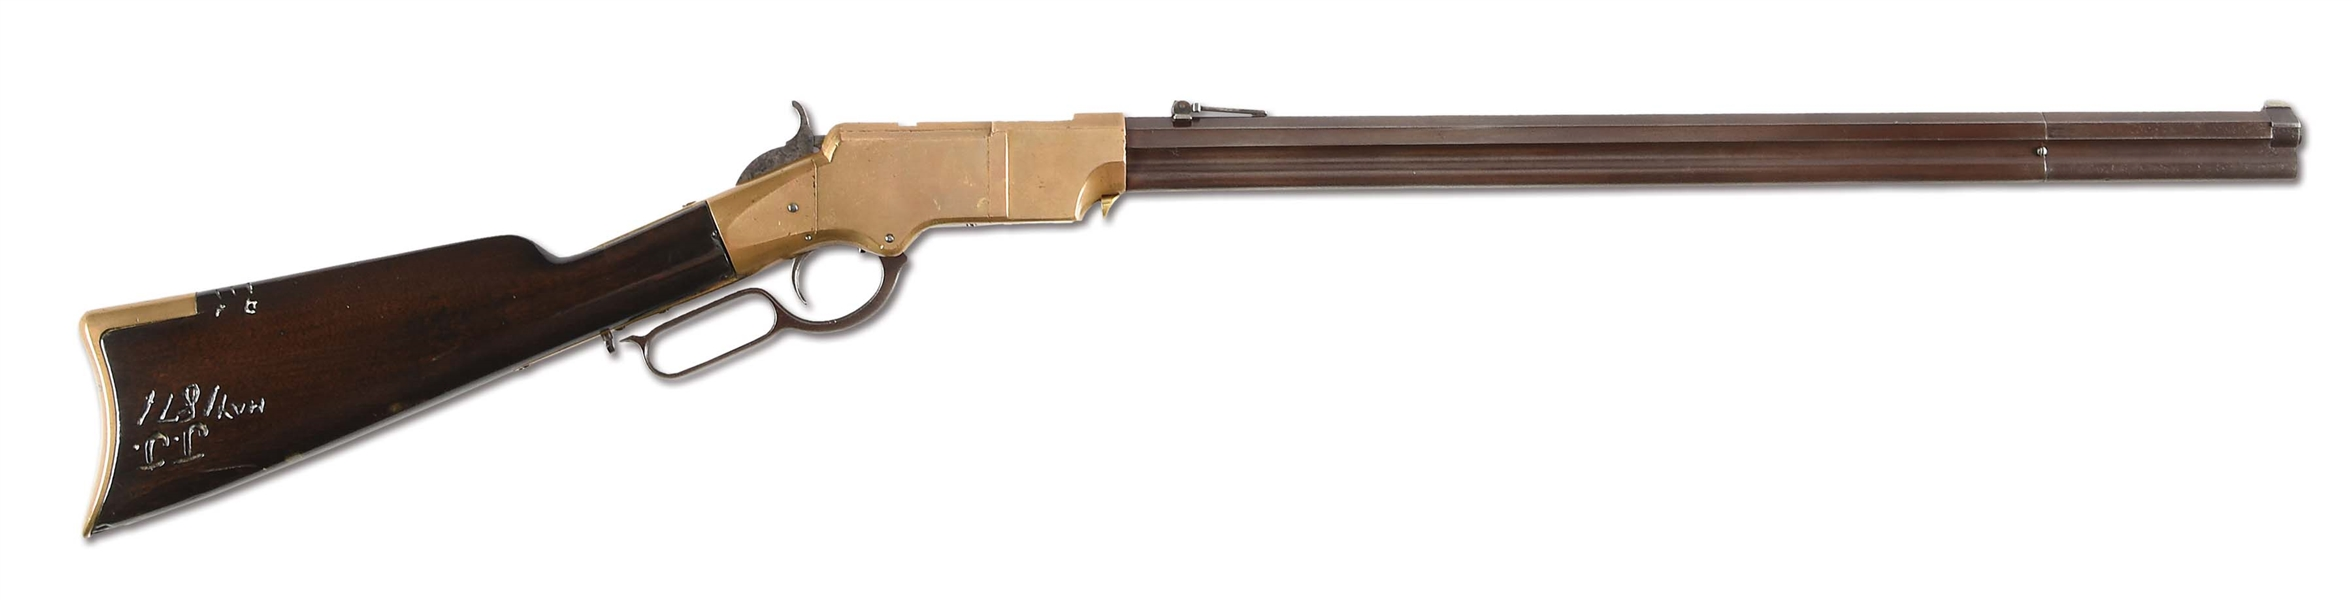 (A) NEW HAVEN ARMS MODEL 1860 HENRY RIFLE (2454)